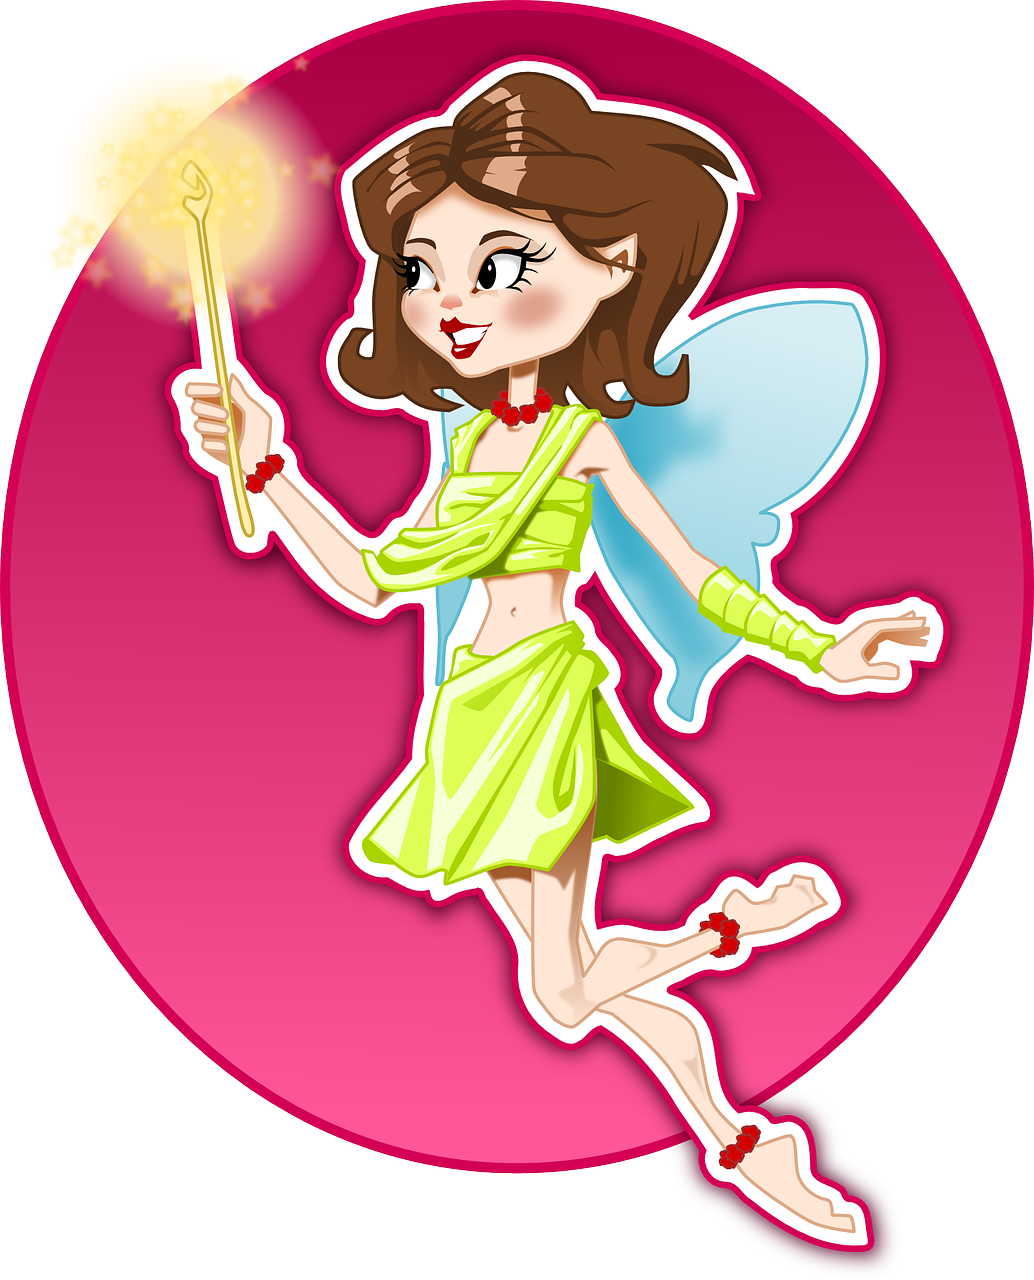 clipart royalty free library Fairy fly transparent image. Magic clipart hand holding wand.